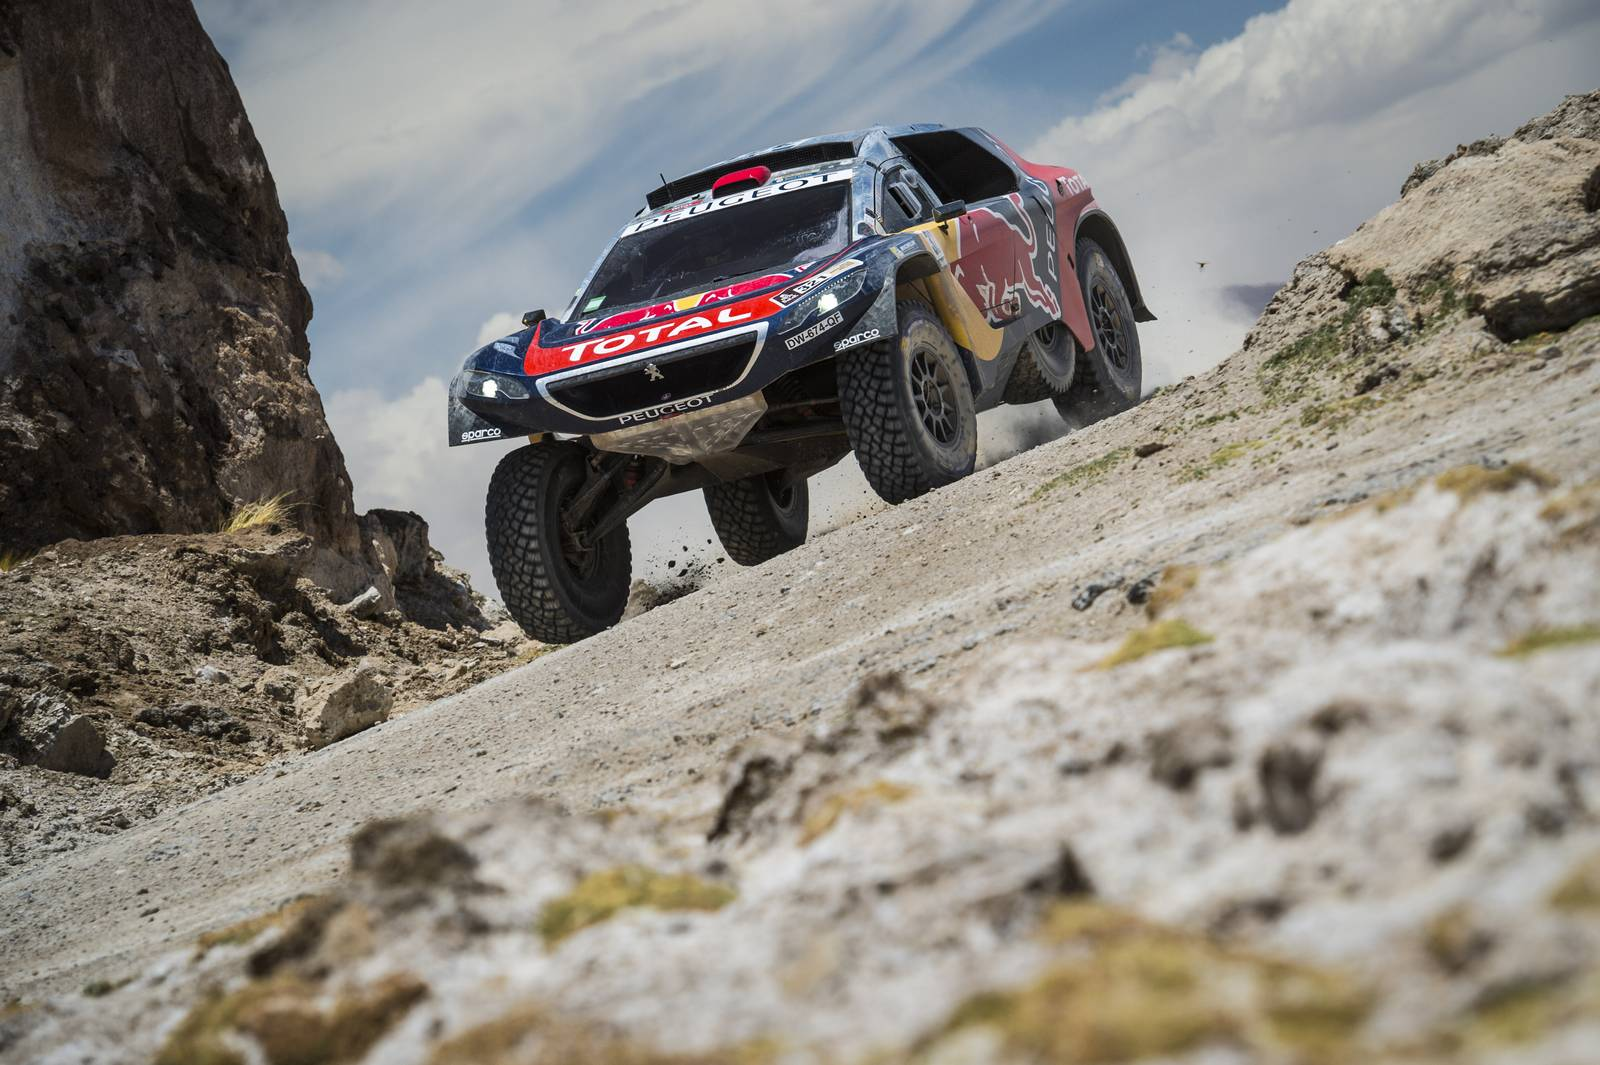 dakar rally 2016 stage 6 13